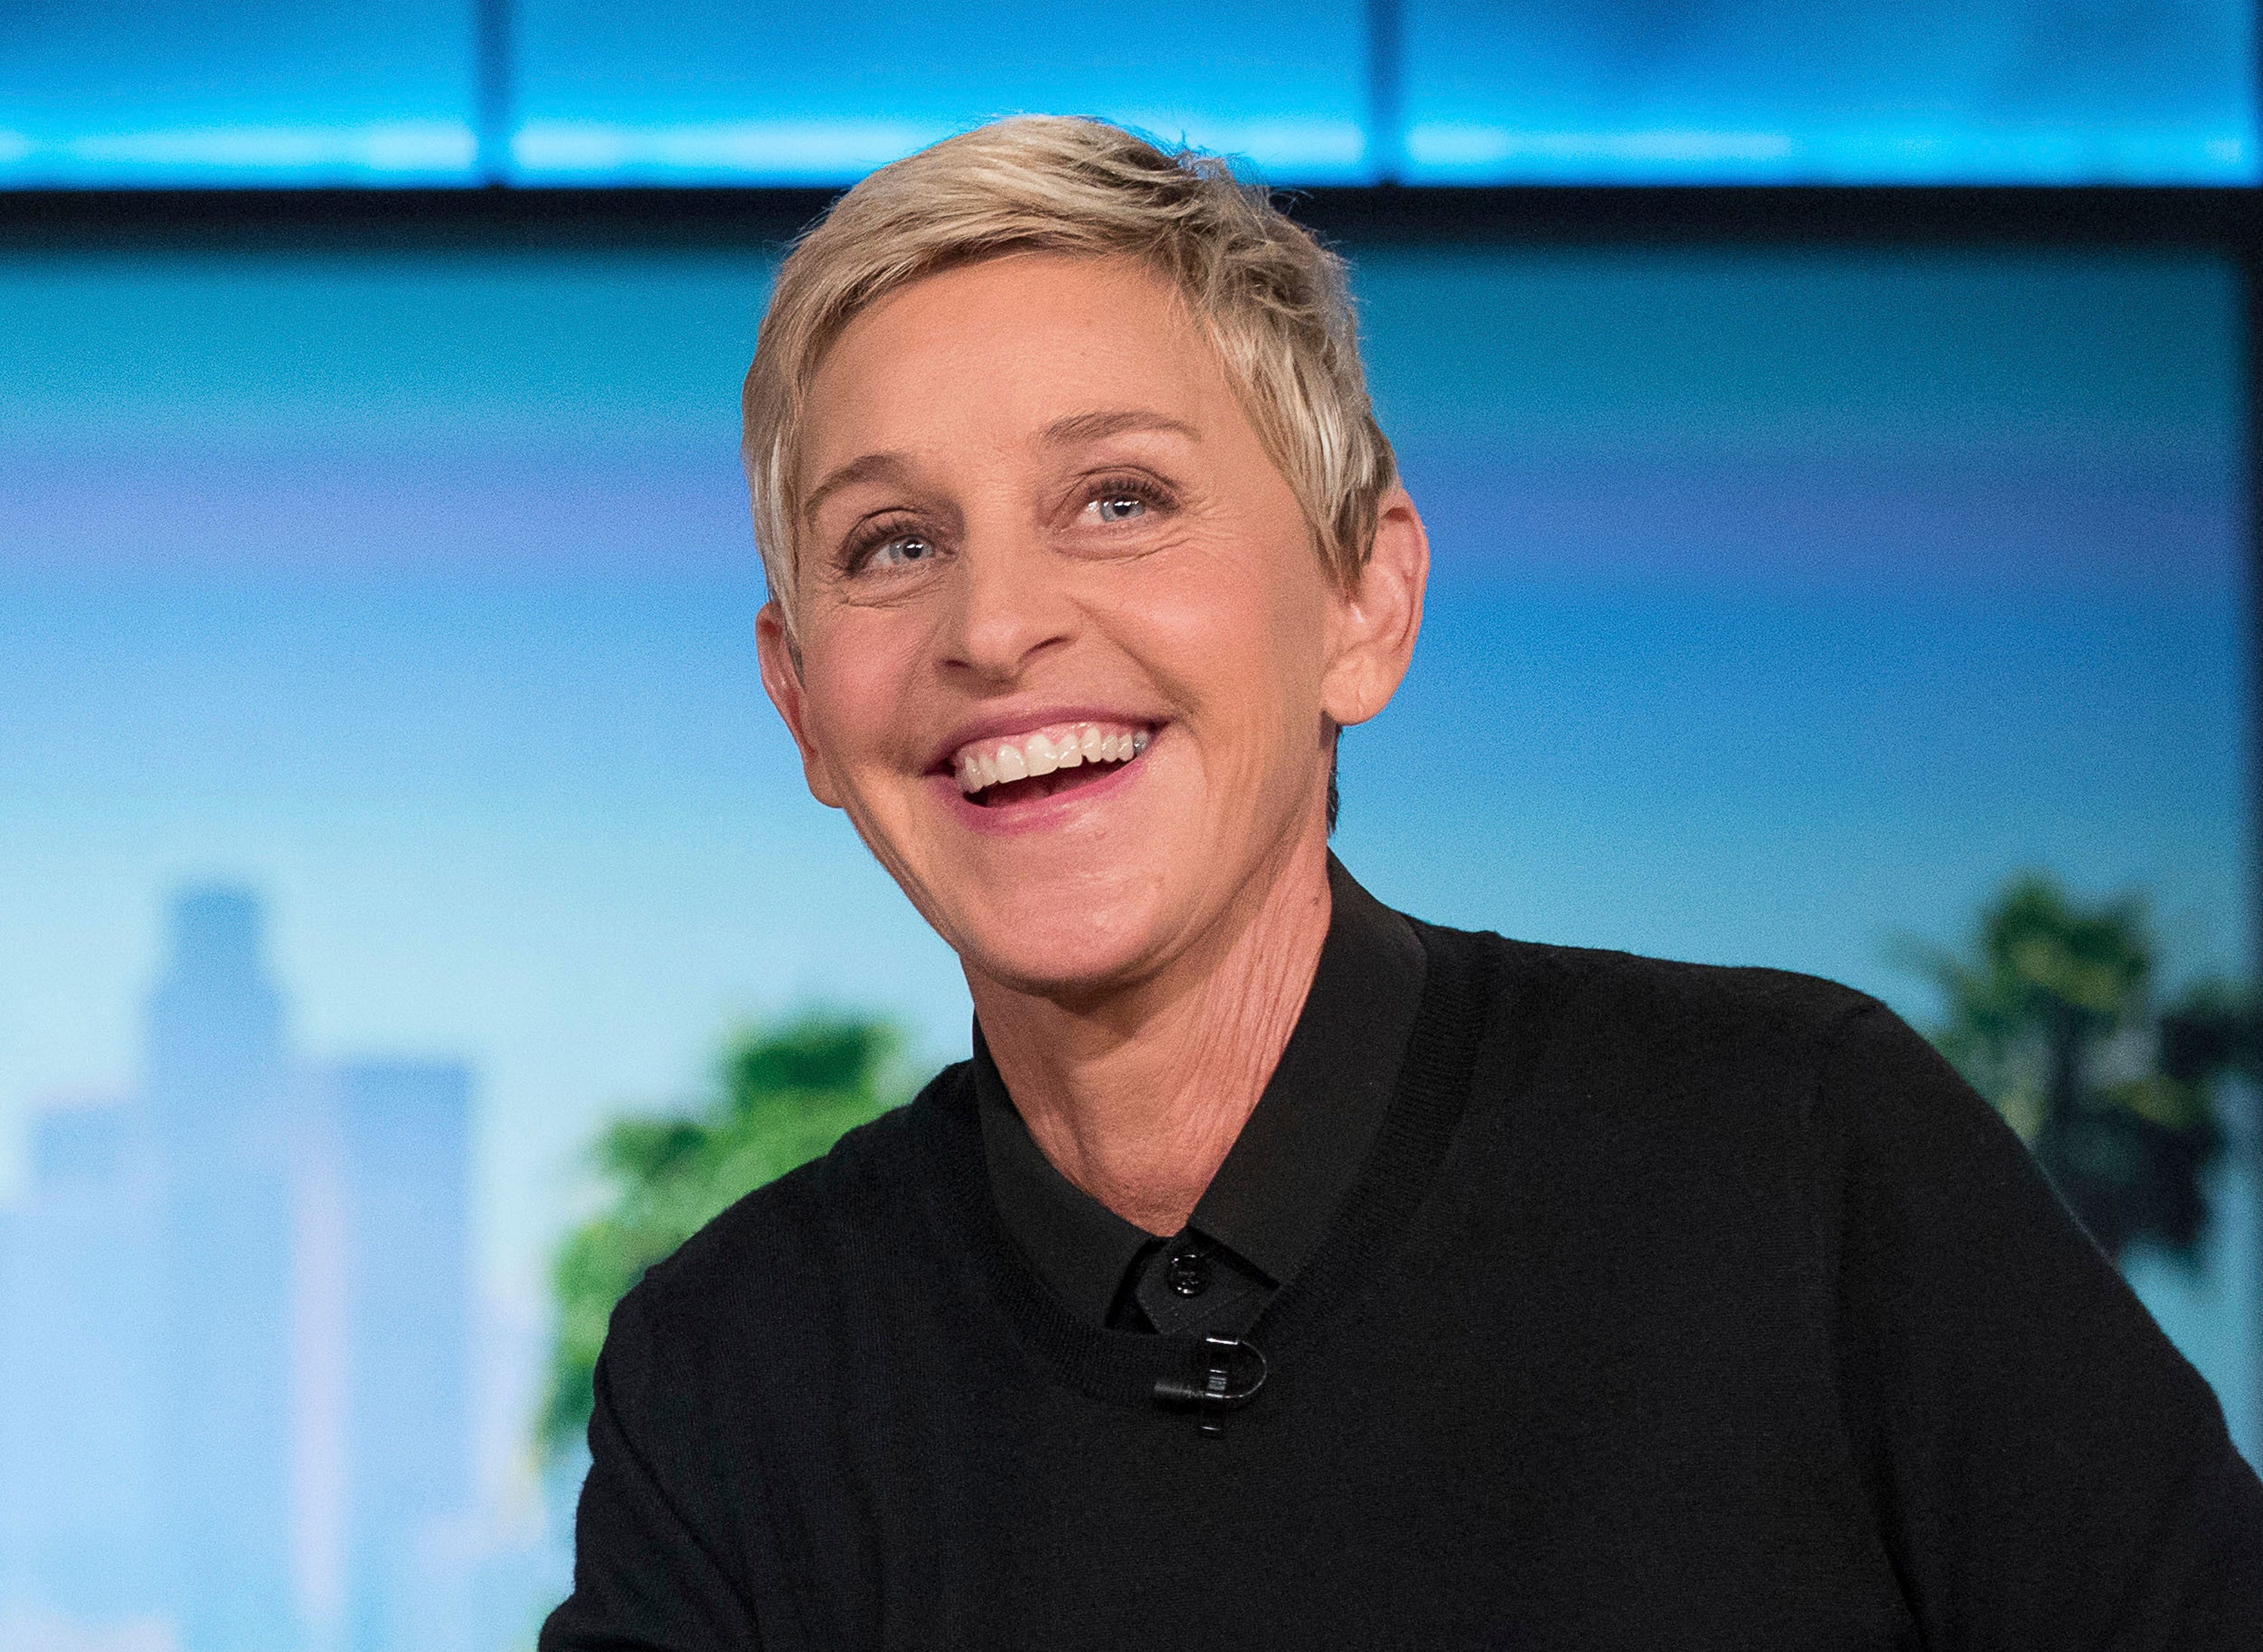 DeGeneres Show: Why mistreatment charges are unlikely to end...